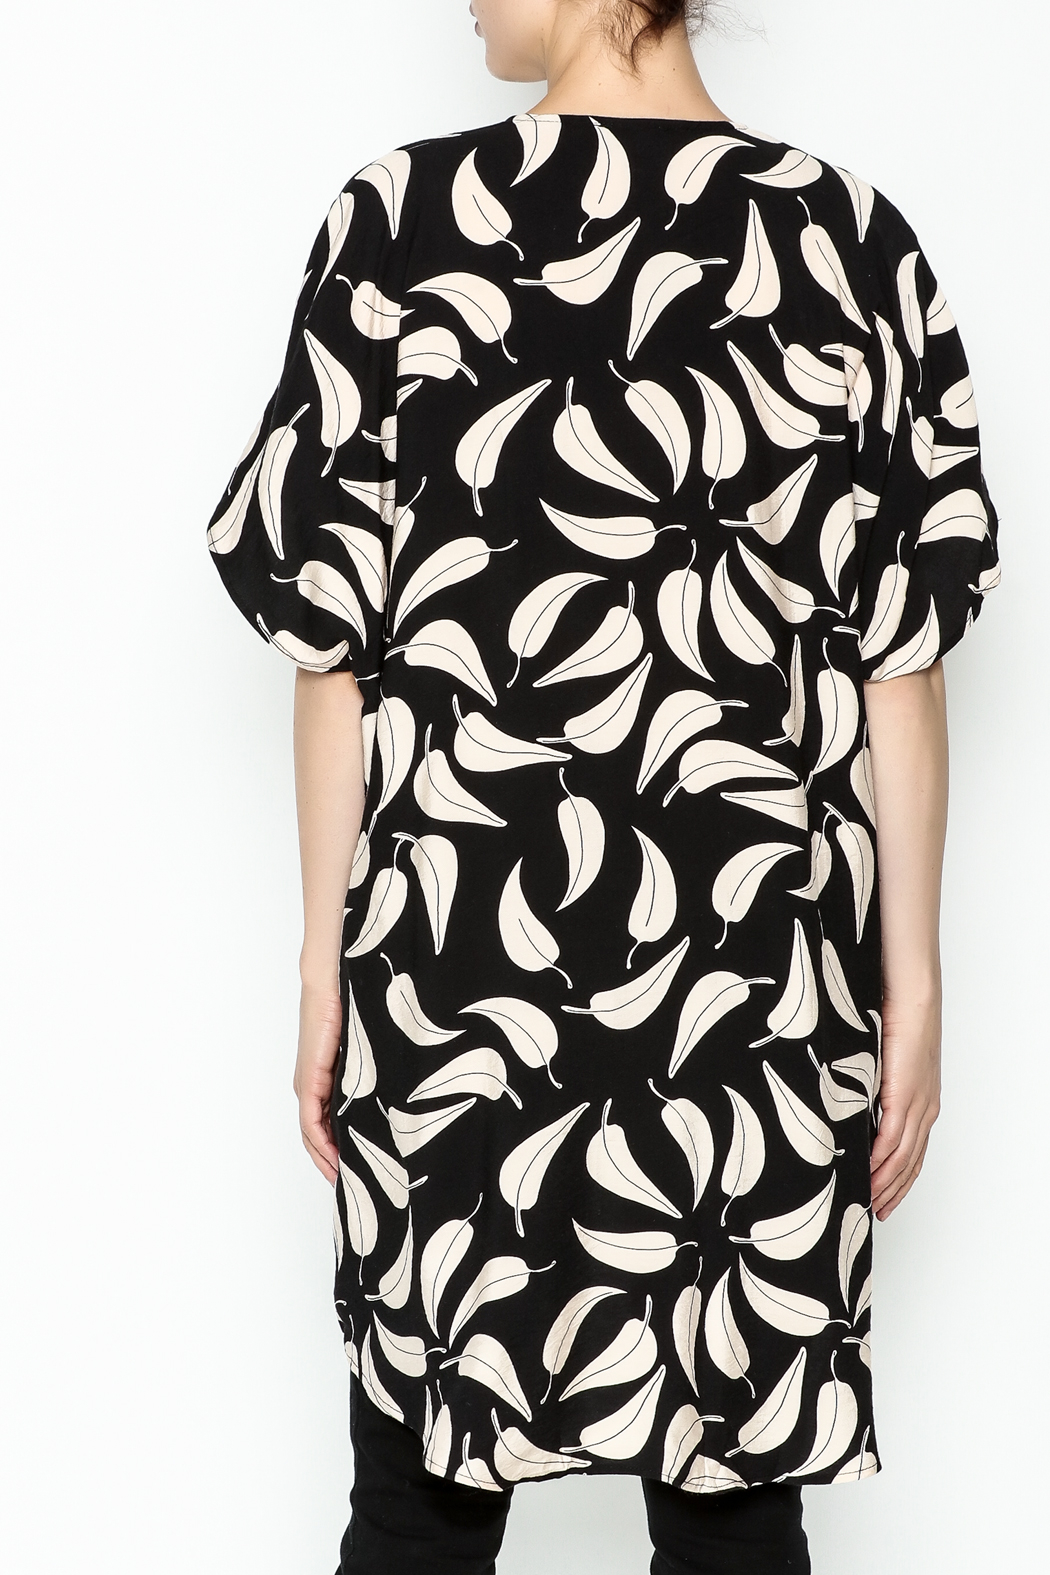 dress forum Leaf Print Blouse from New York City by Dor L'Dor ...